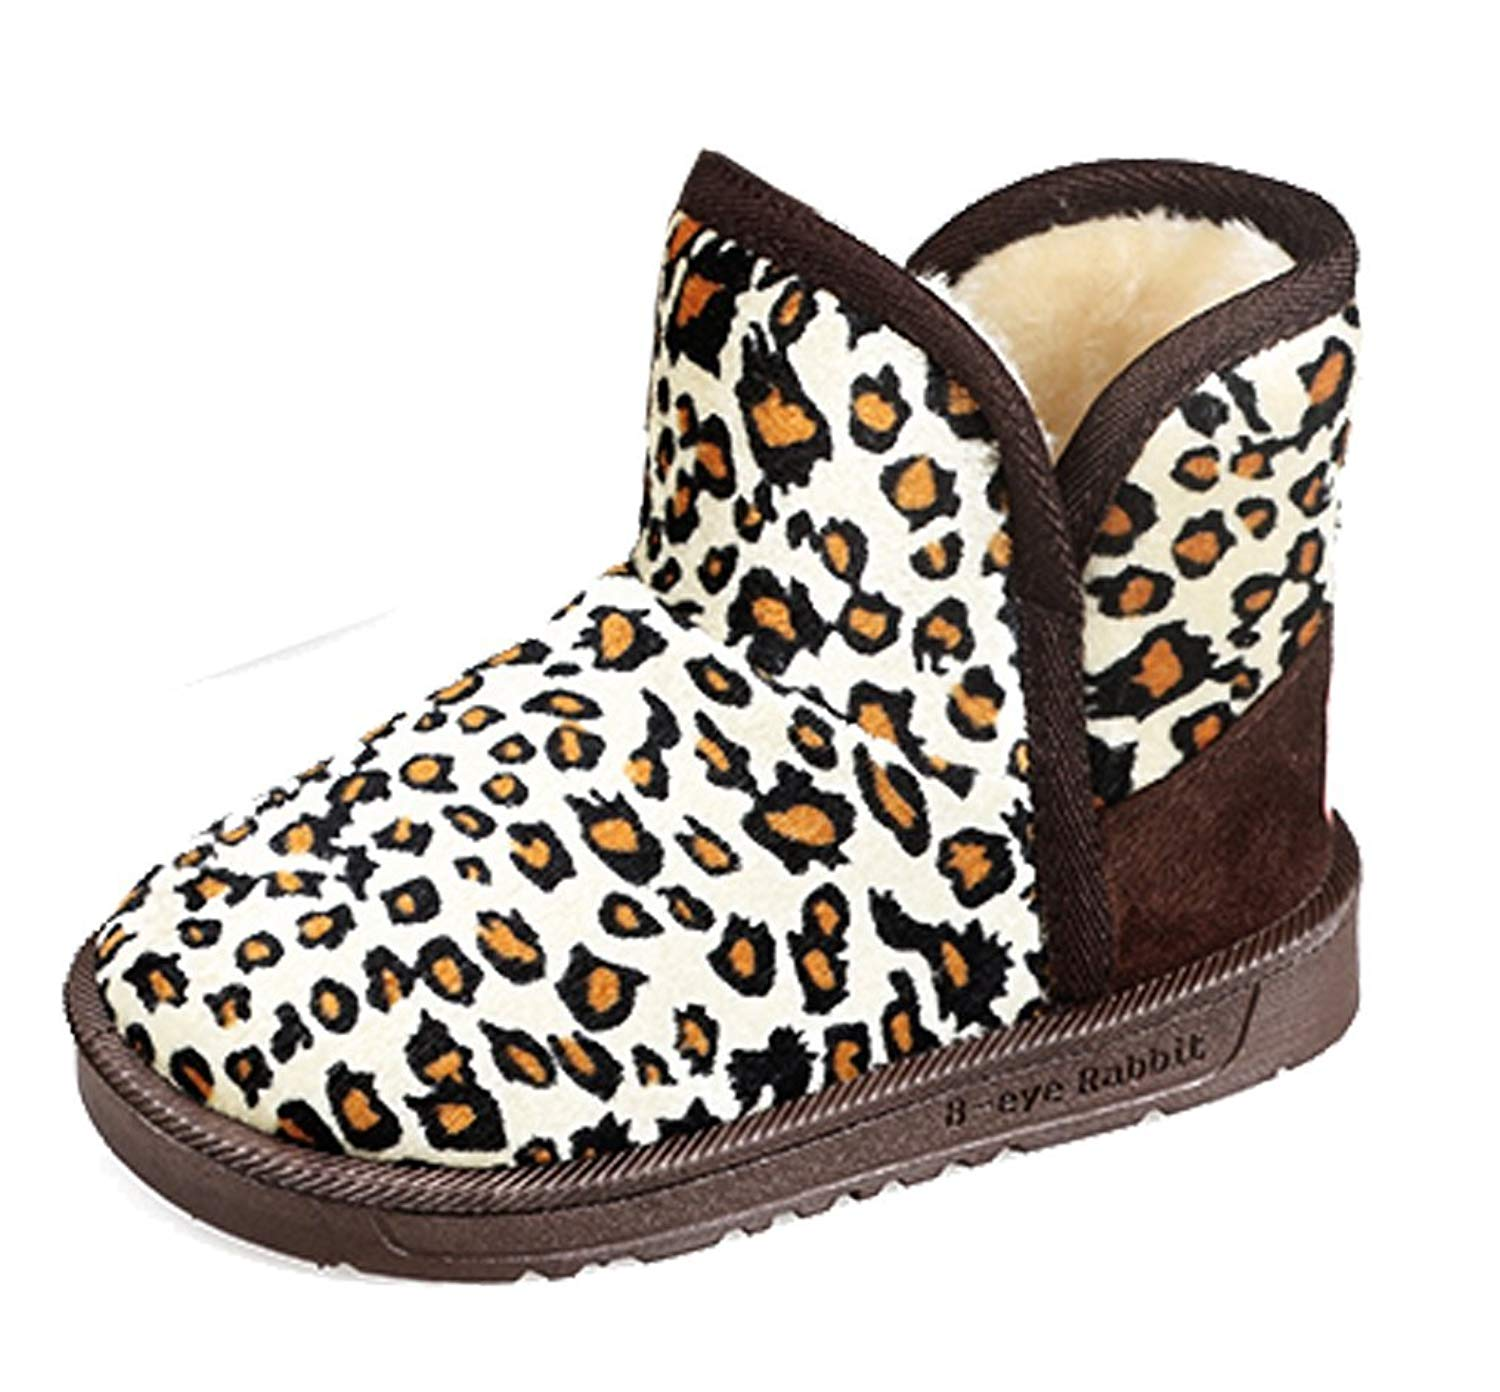 74fbe4411c57 Cattior Toddler Little Kid Leopard Fashion Winter Boots Shoes Kids Snow  Boots (13 M